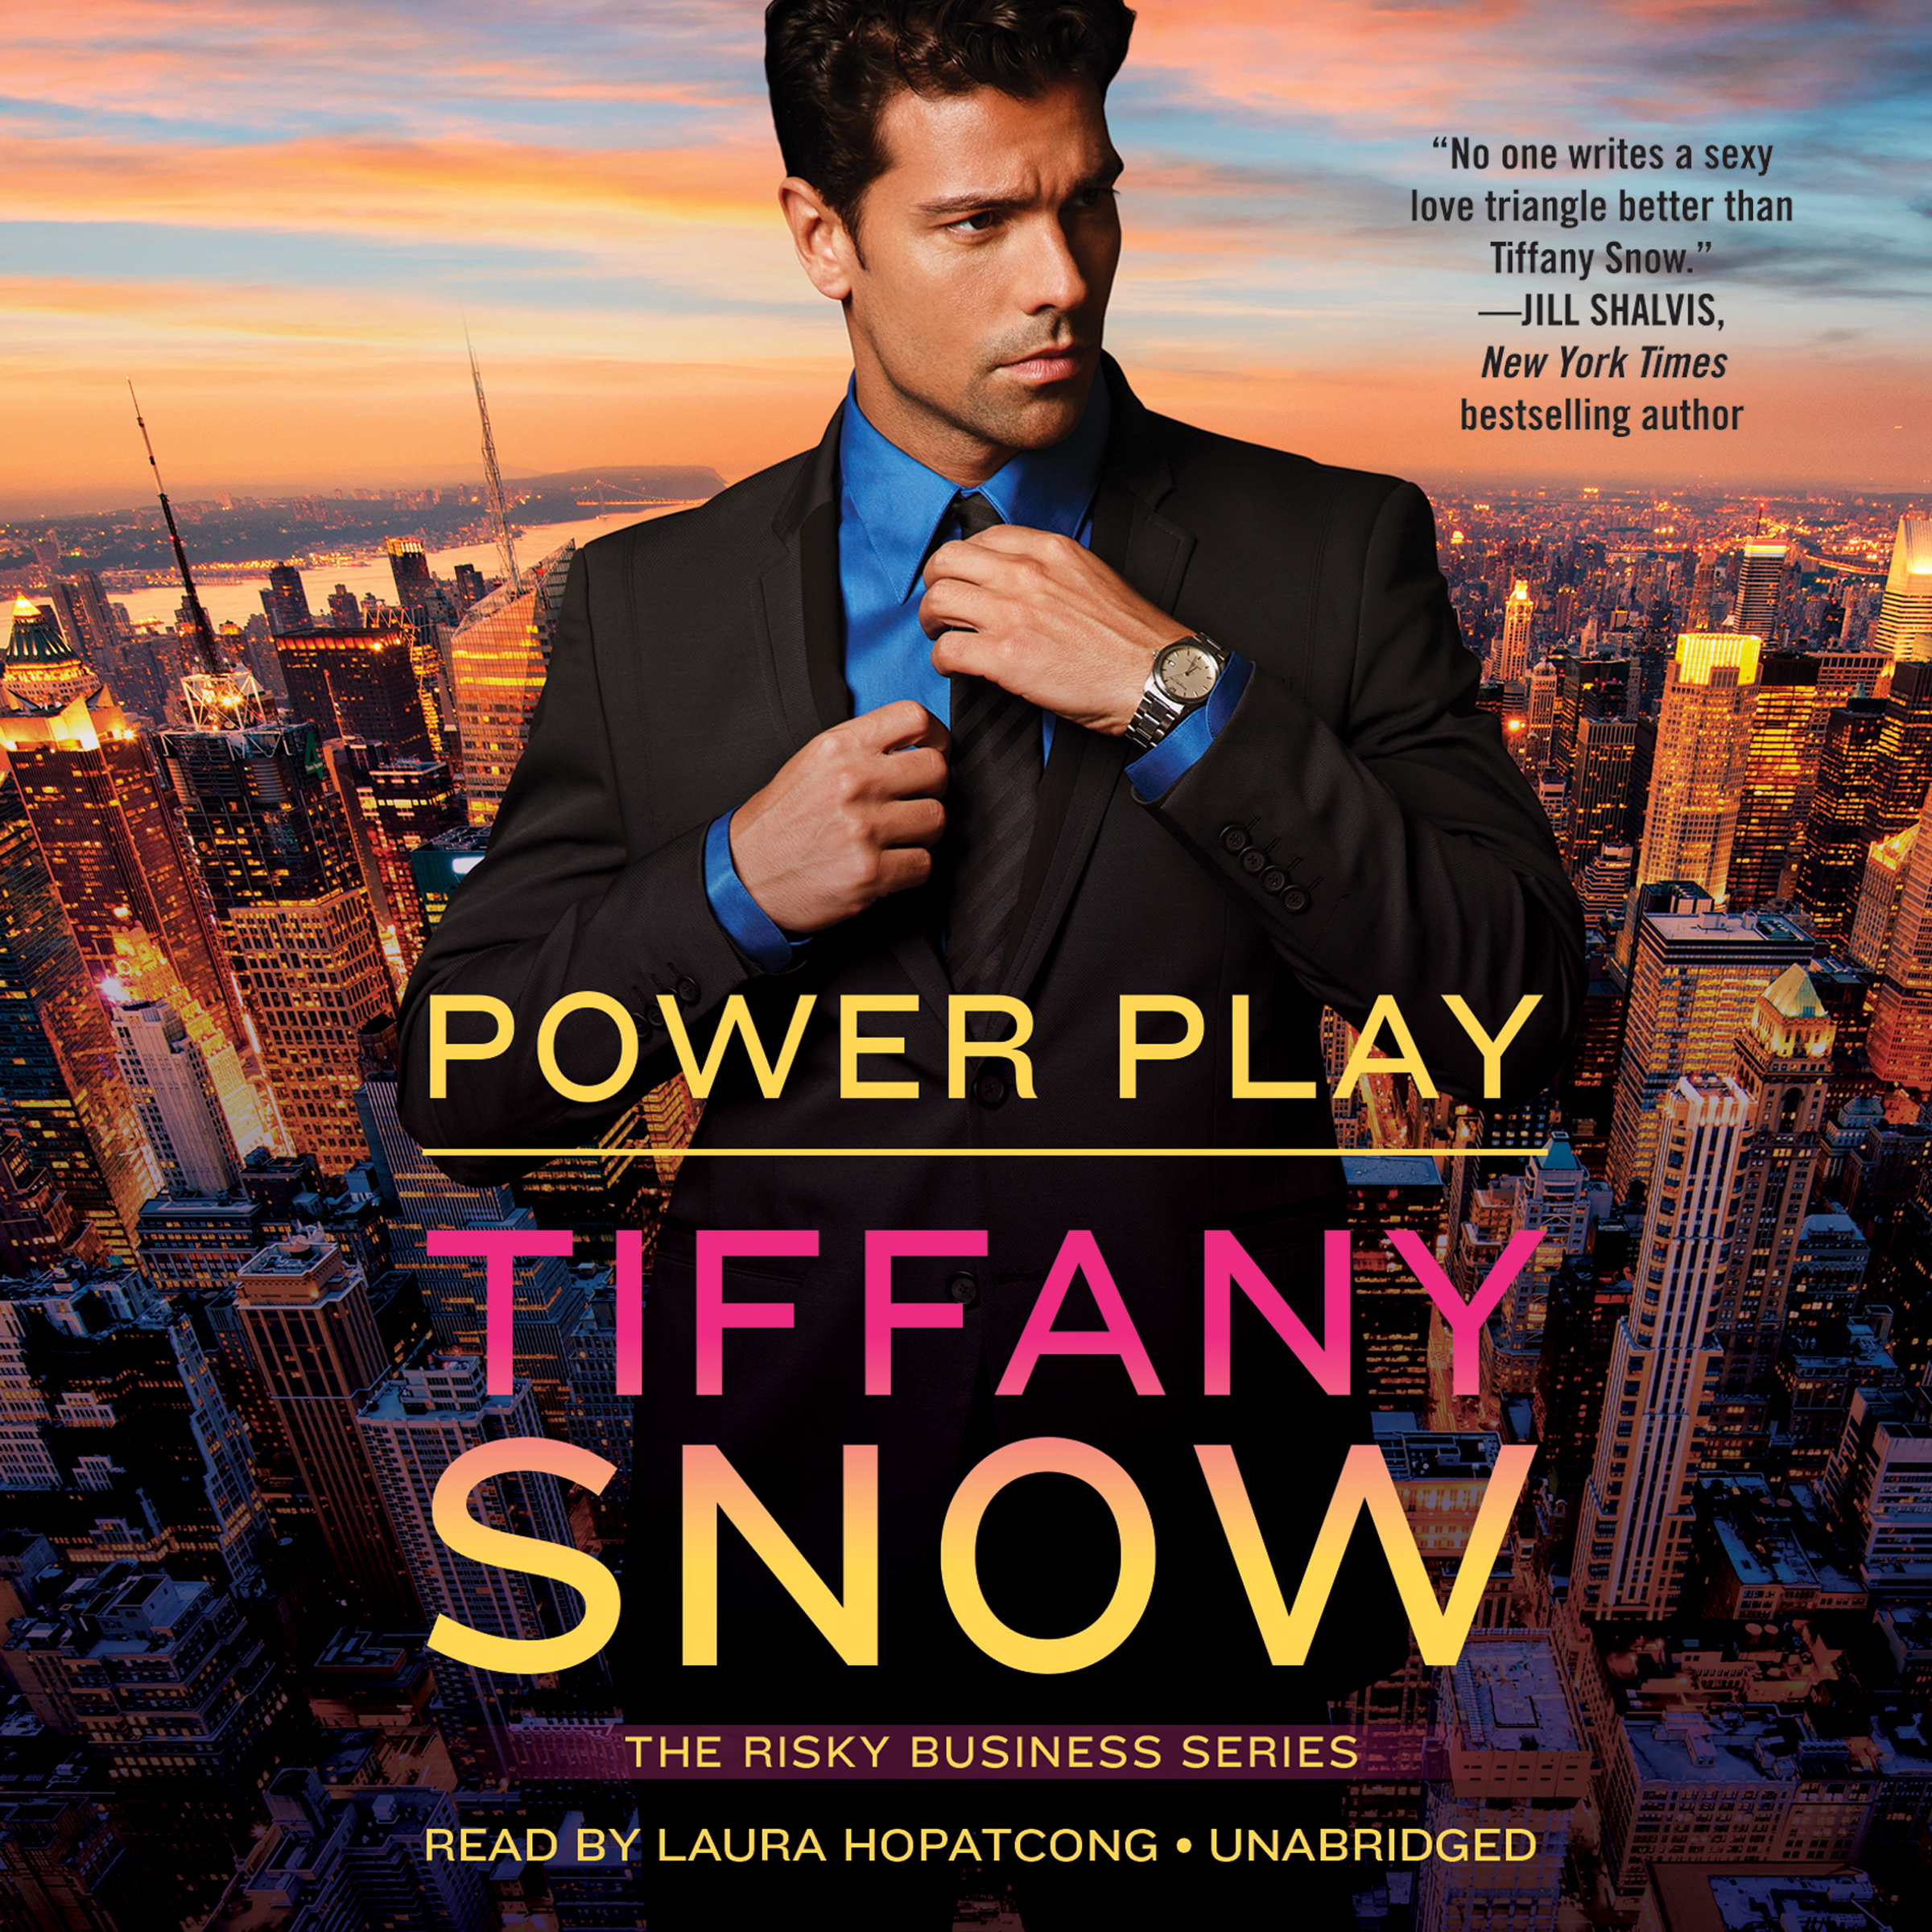 Printable Power Play Audiobook Cover Art